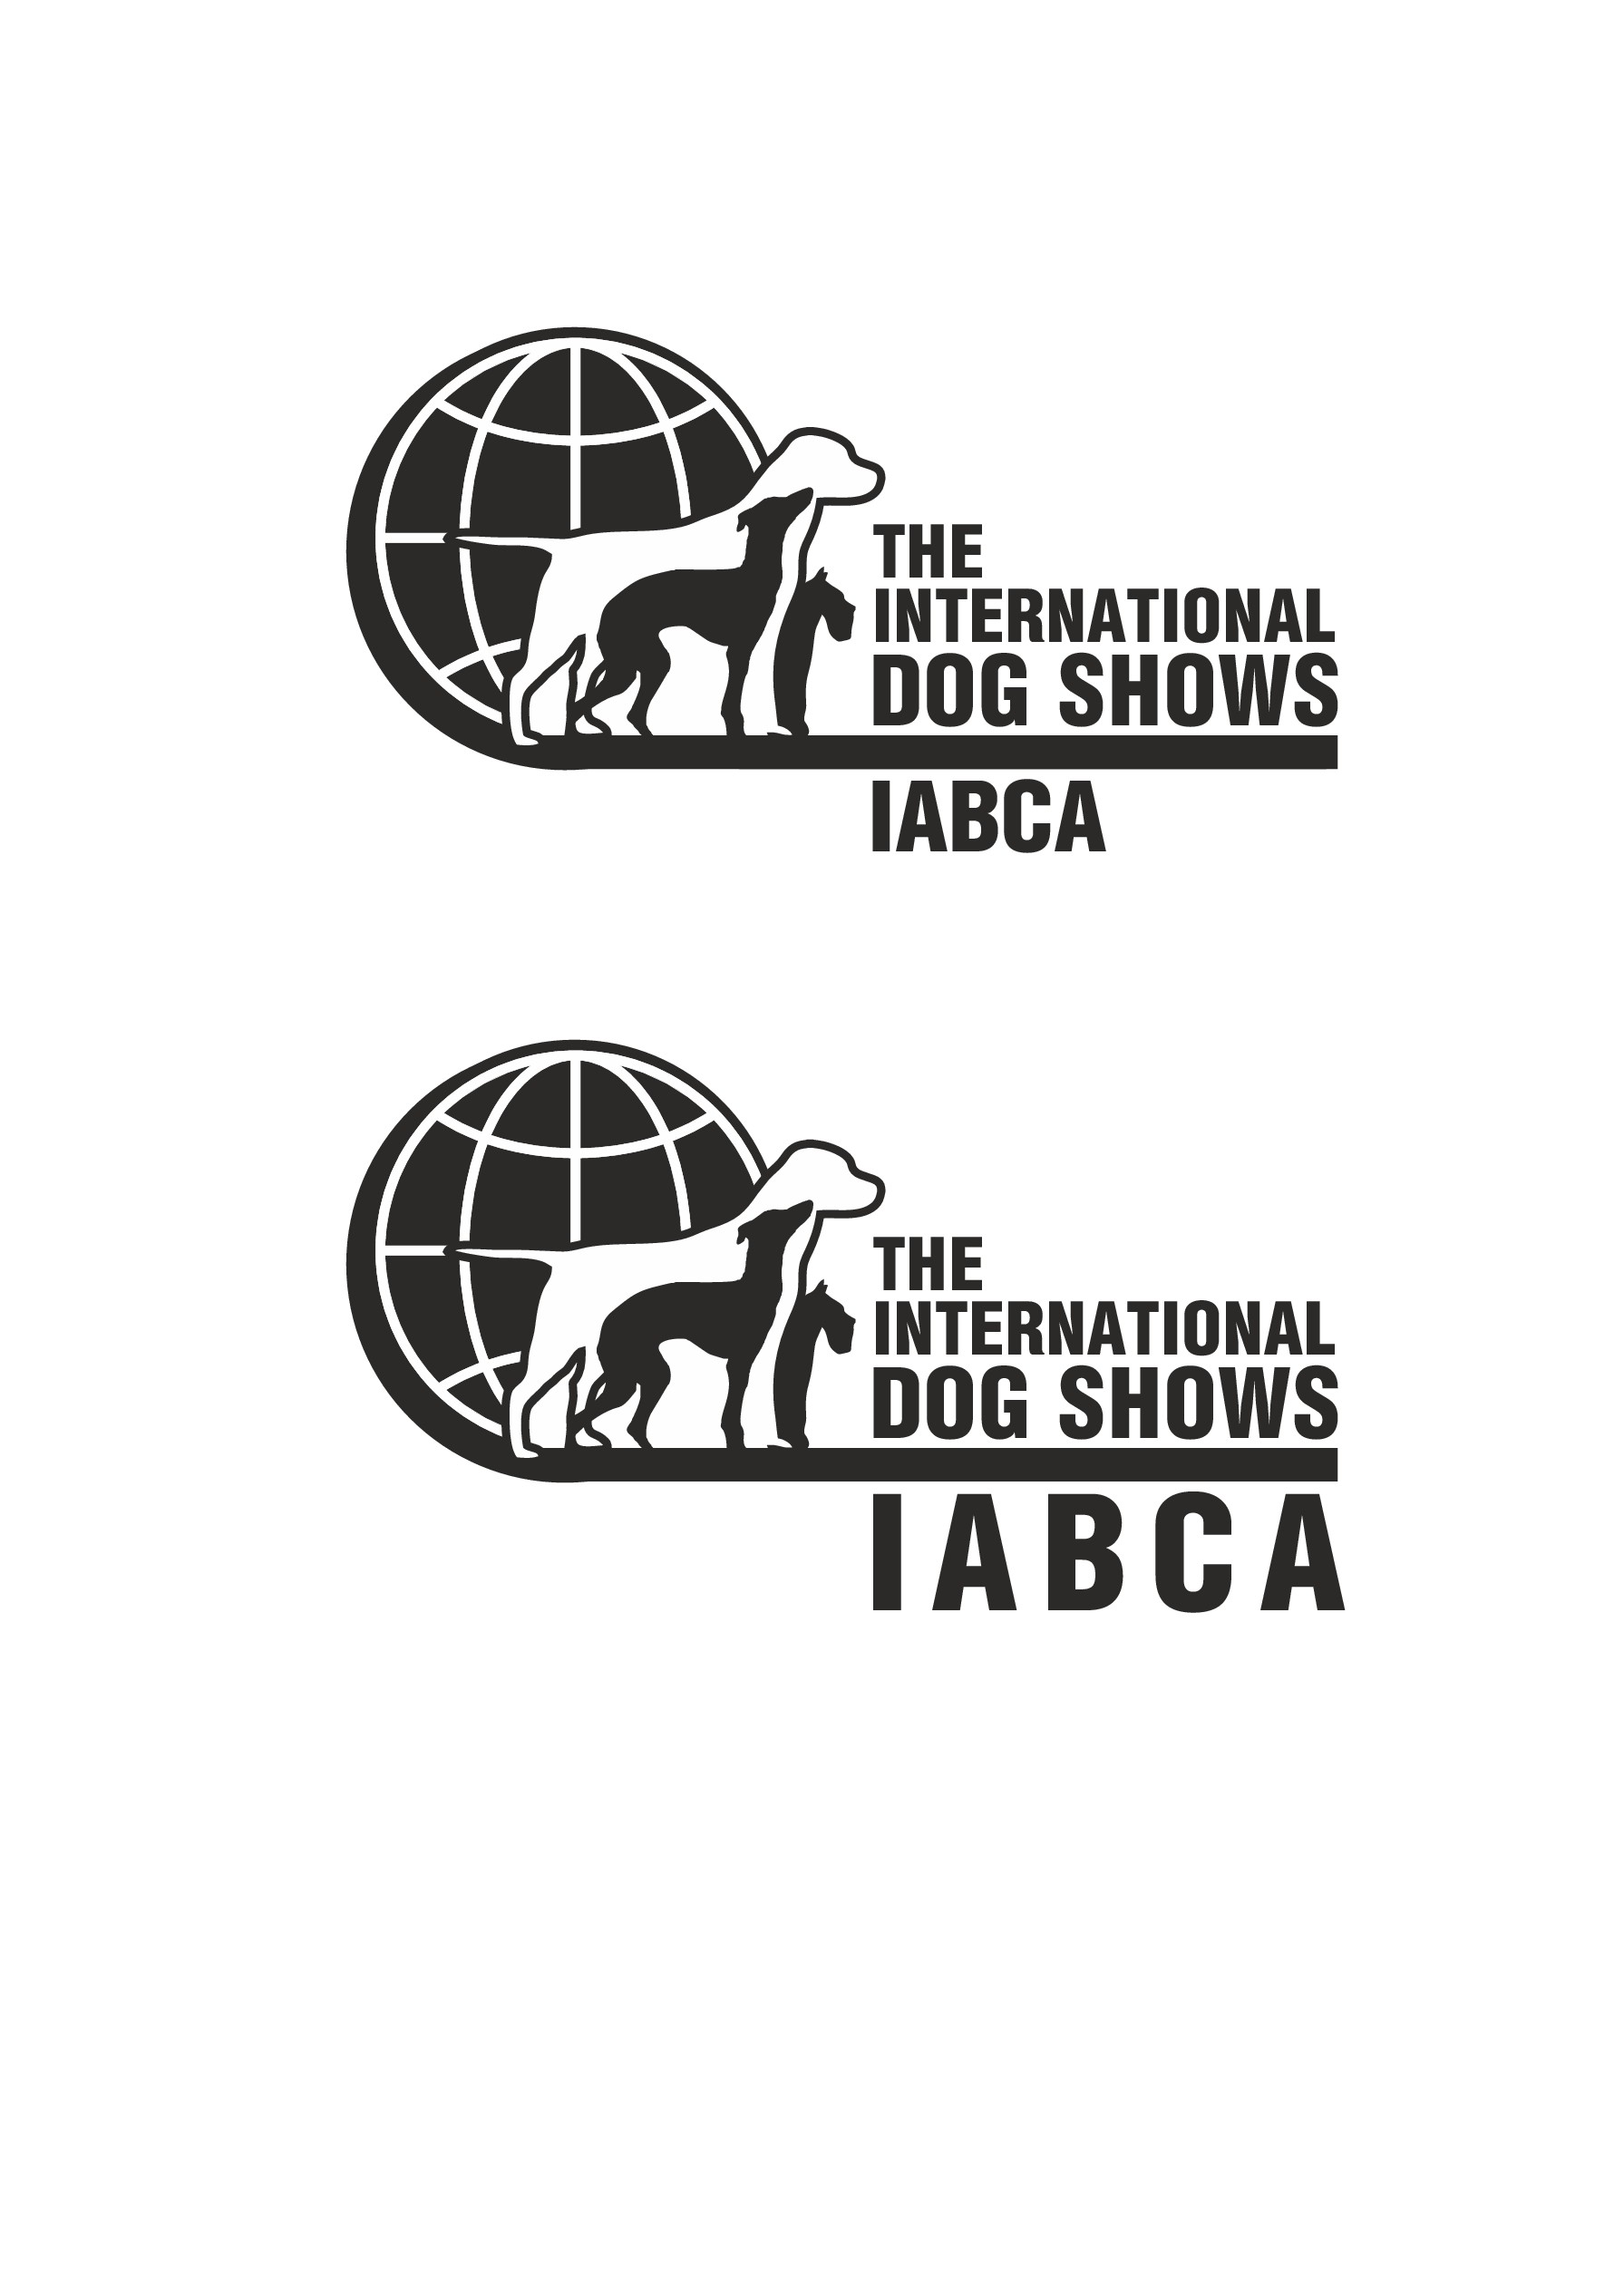 Design a new logo for The International Dog Shows & IABCA